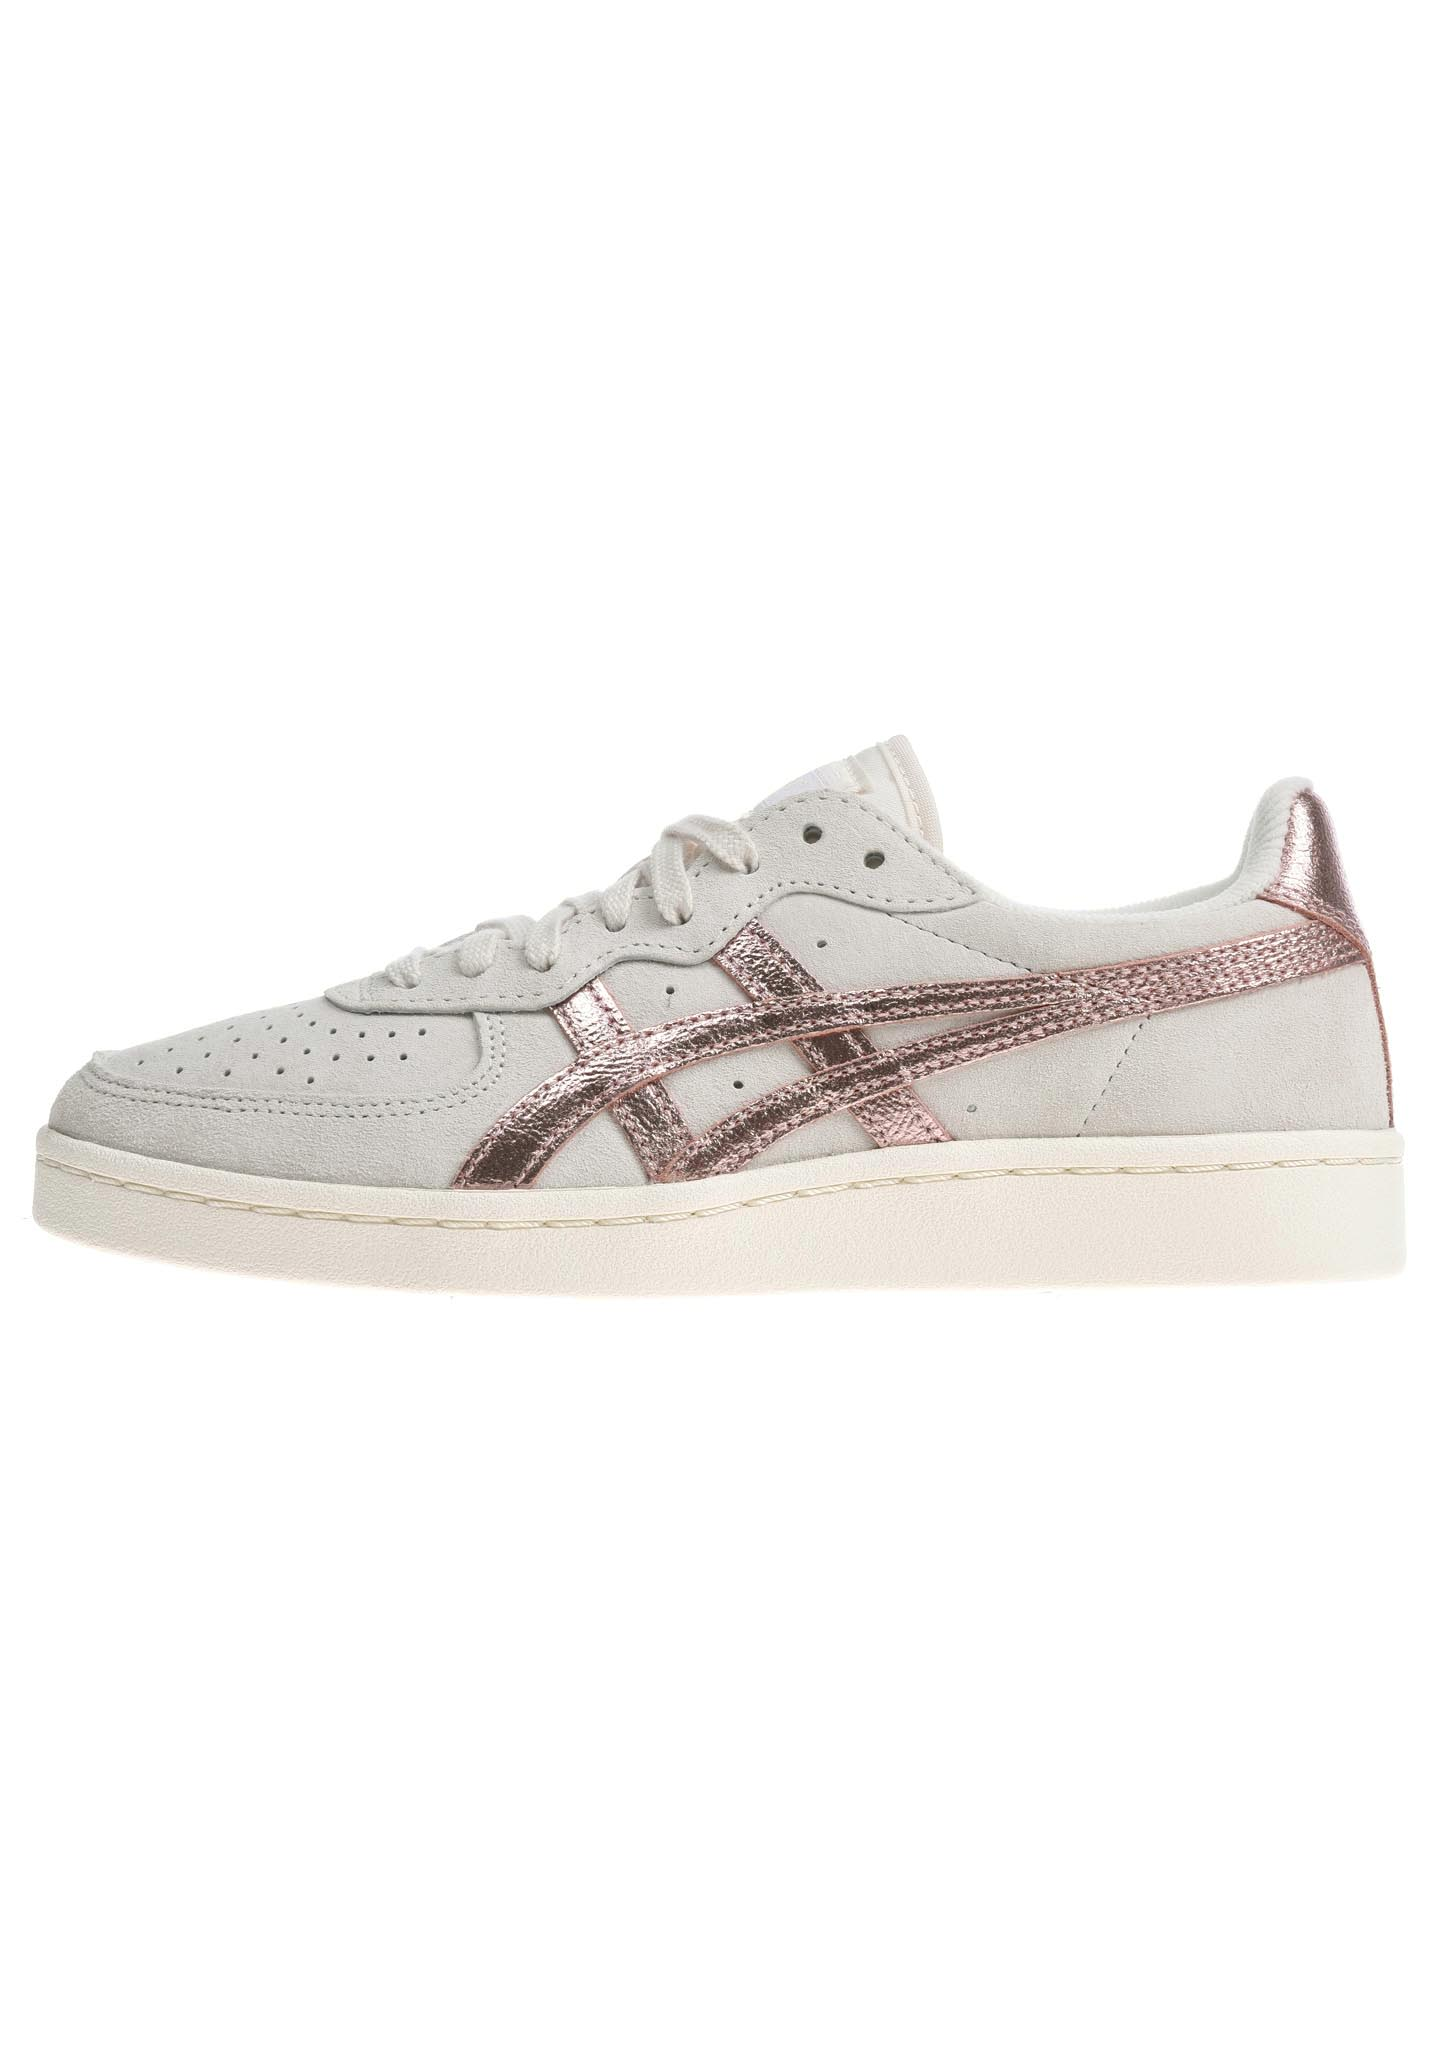 outlet store 095e5 e0572 Onitsuka Tiger GSM - Sneakers for Women - Beige